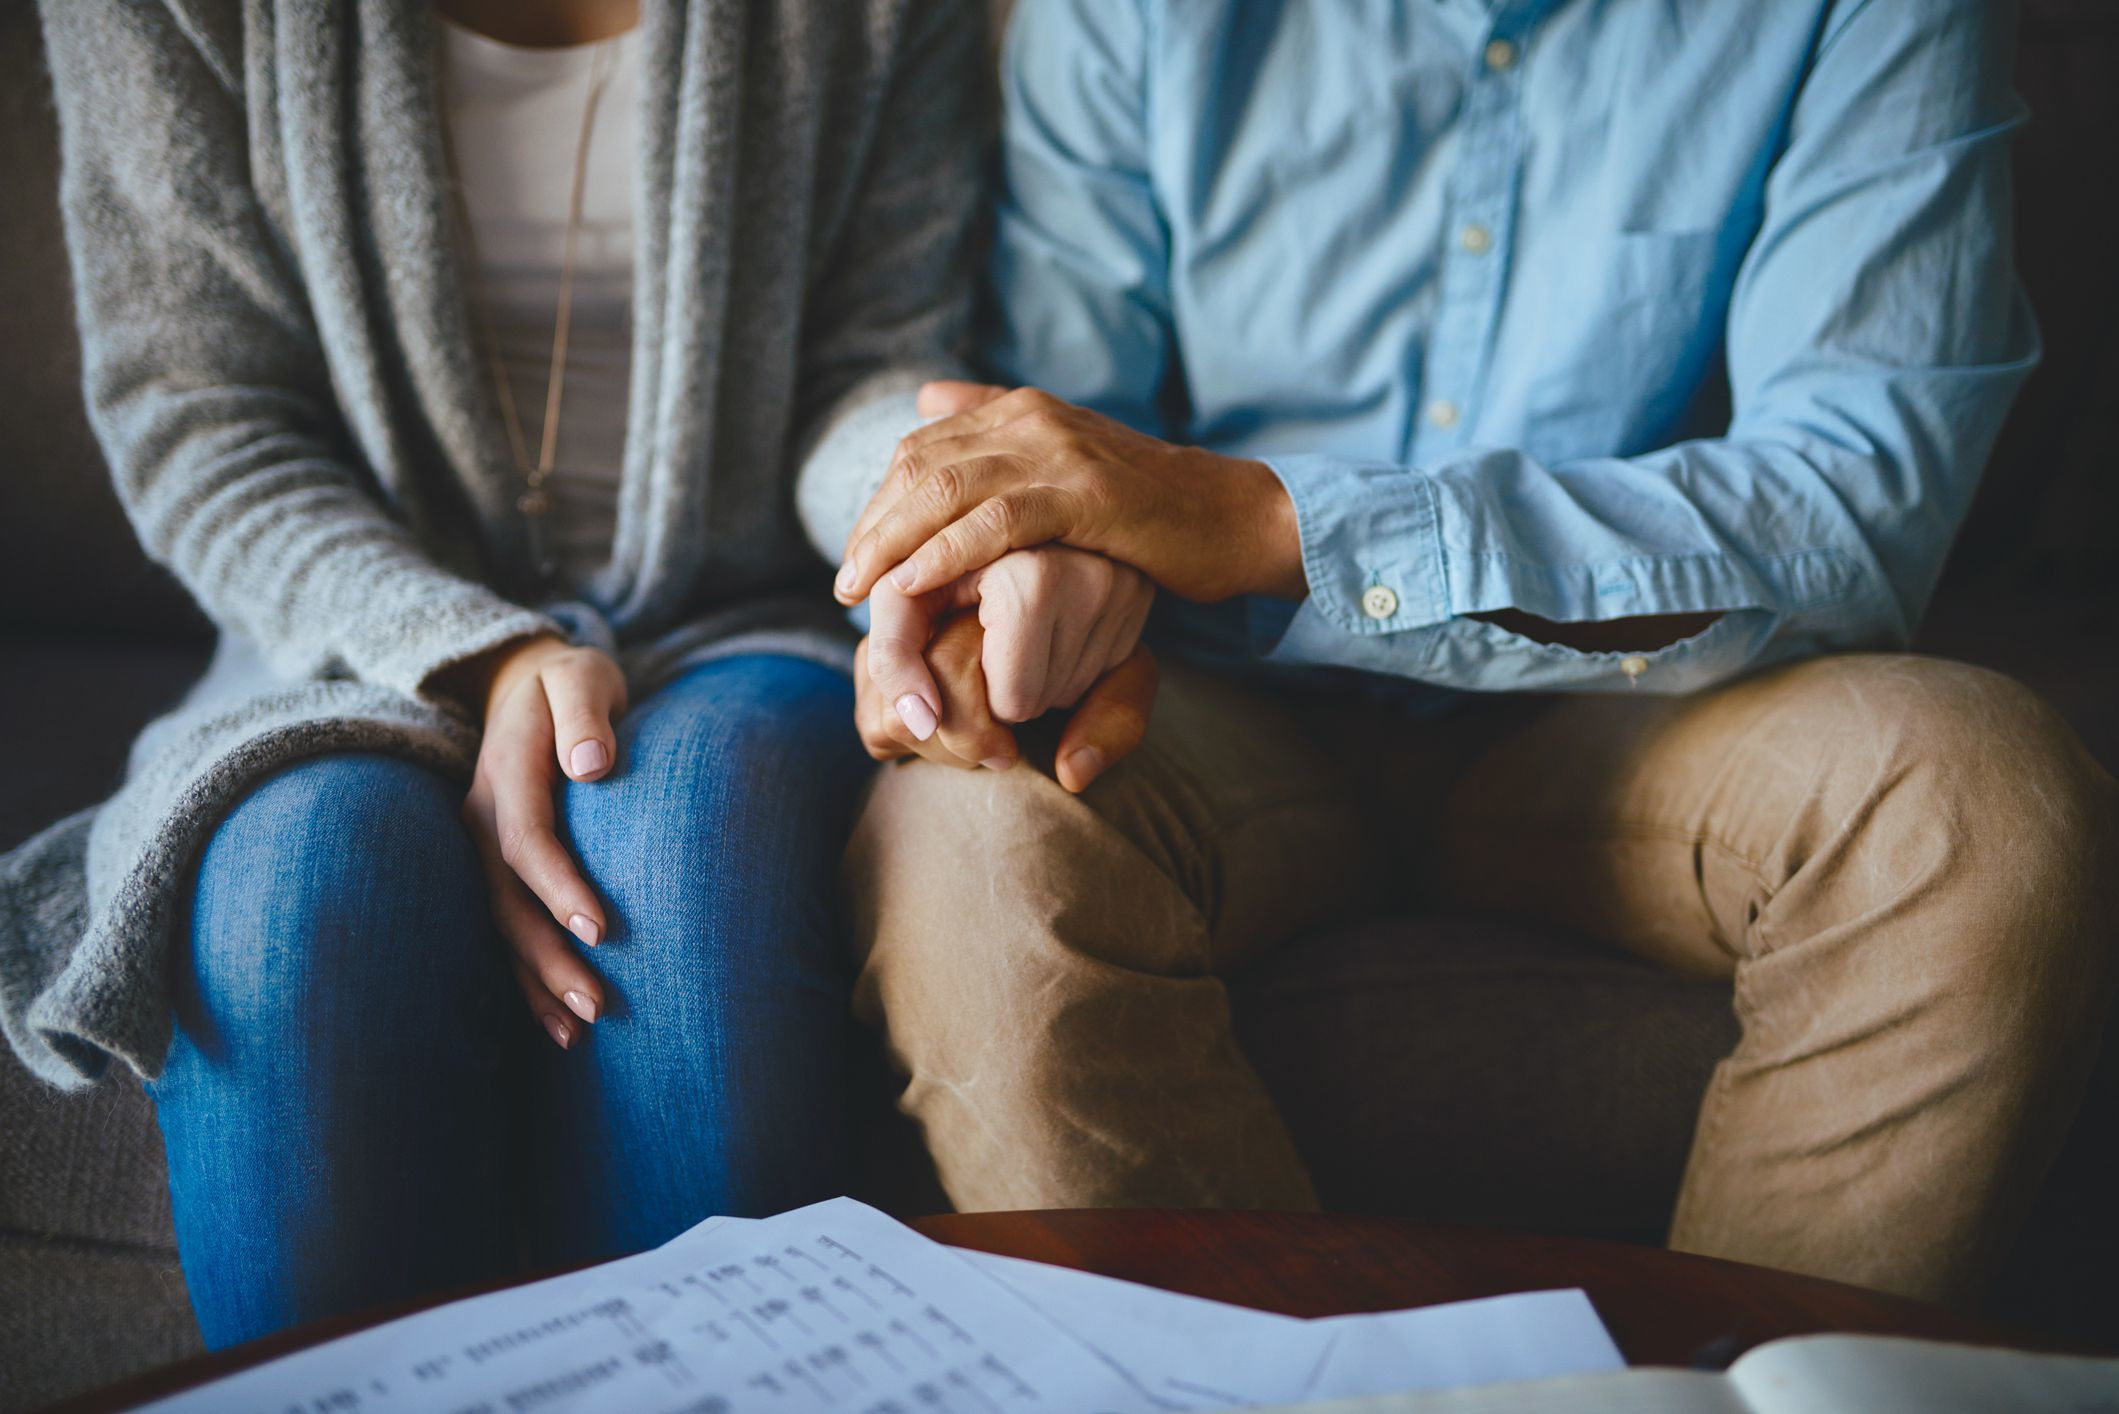 A lack of effort from a partner is a universal sign of disinterest and you should not ignore it if you see the sign in a relationship [Credit - Shutterstock]